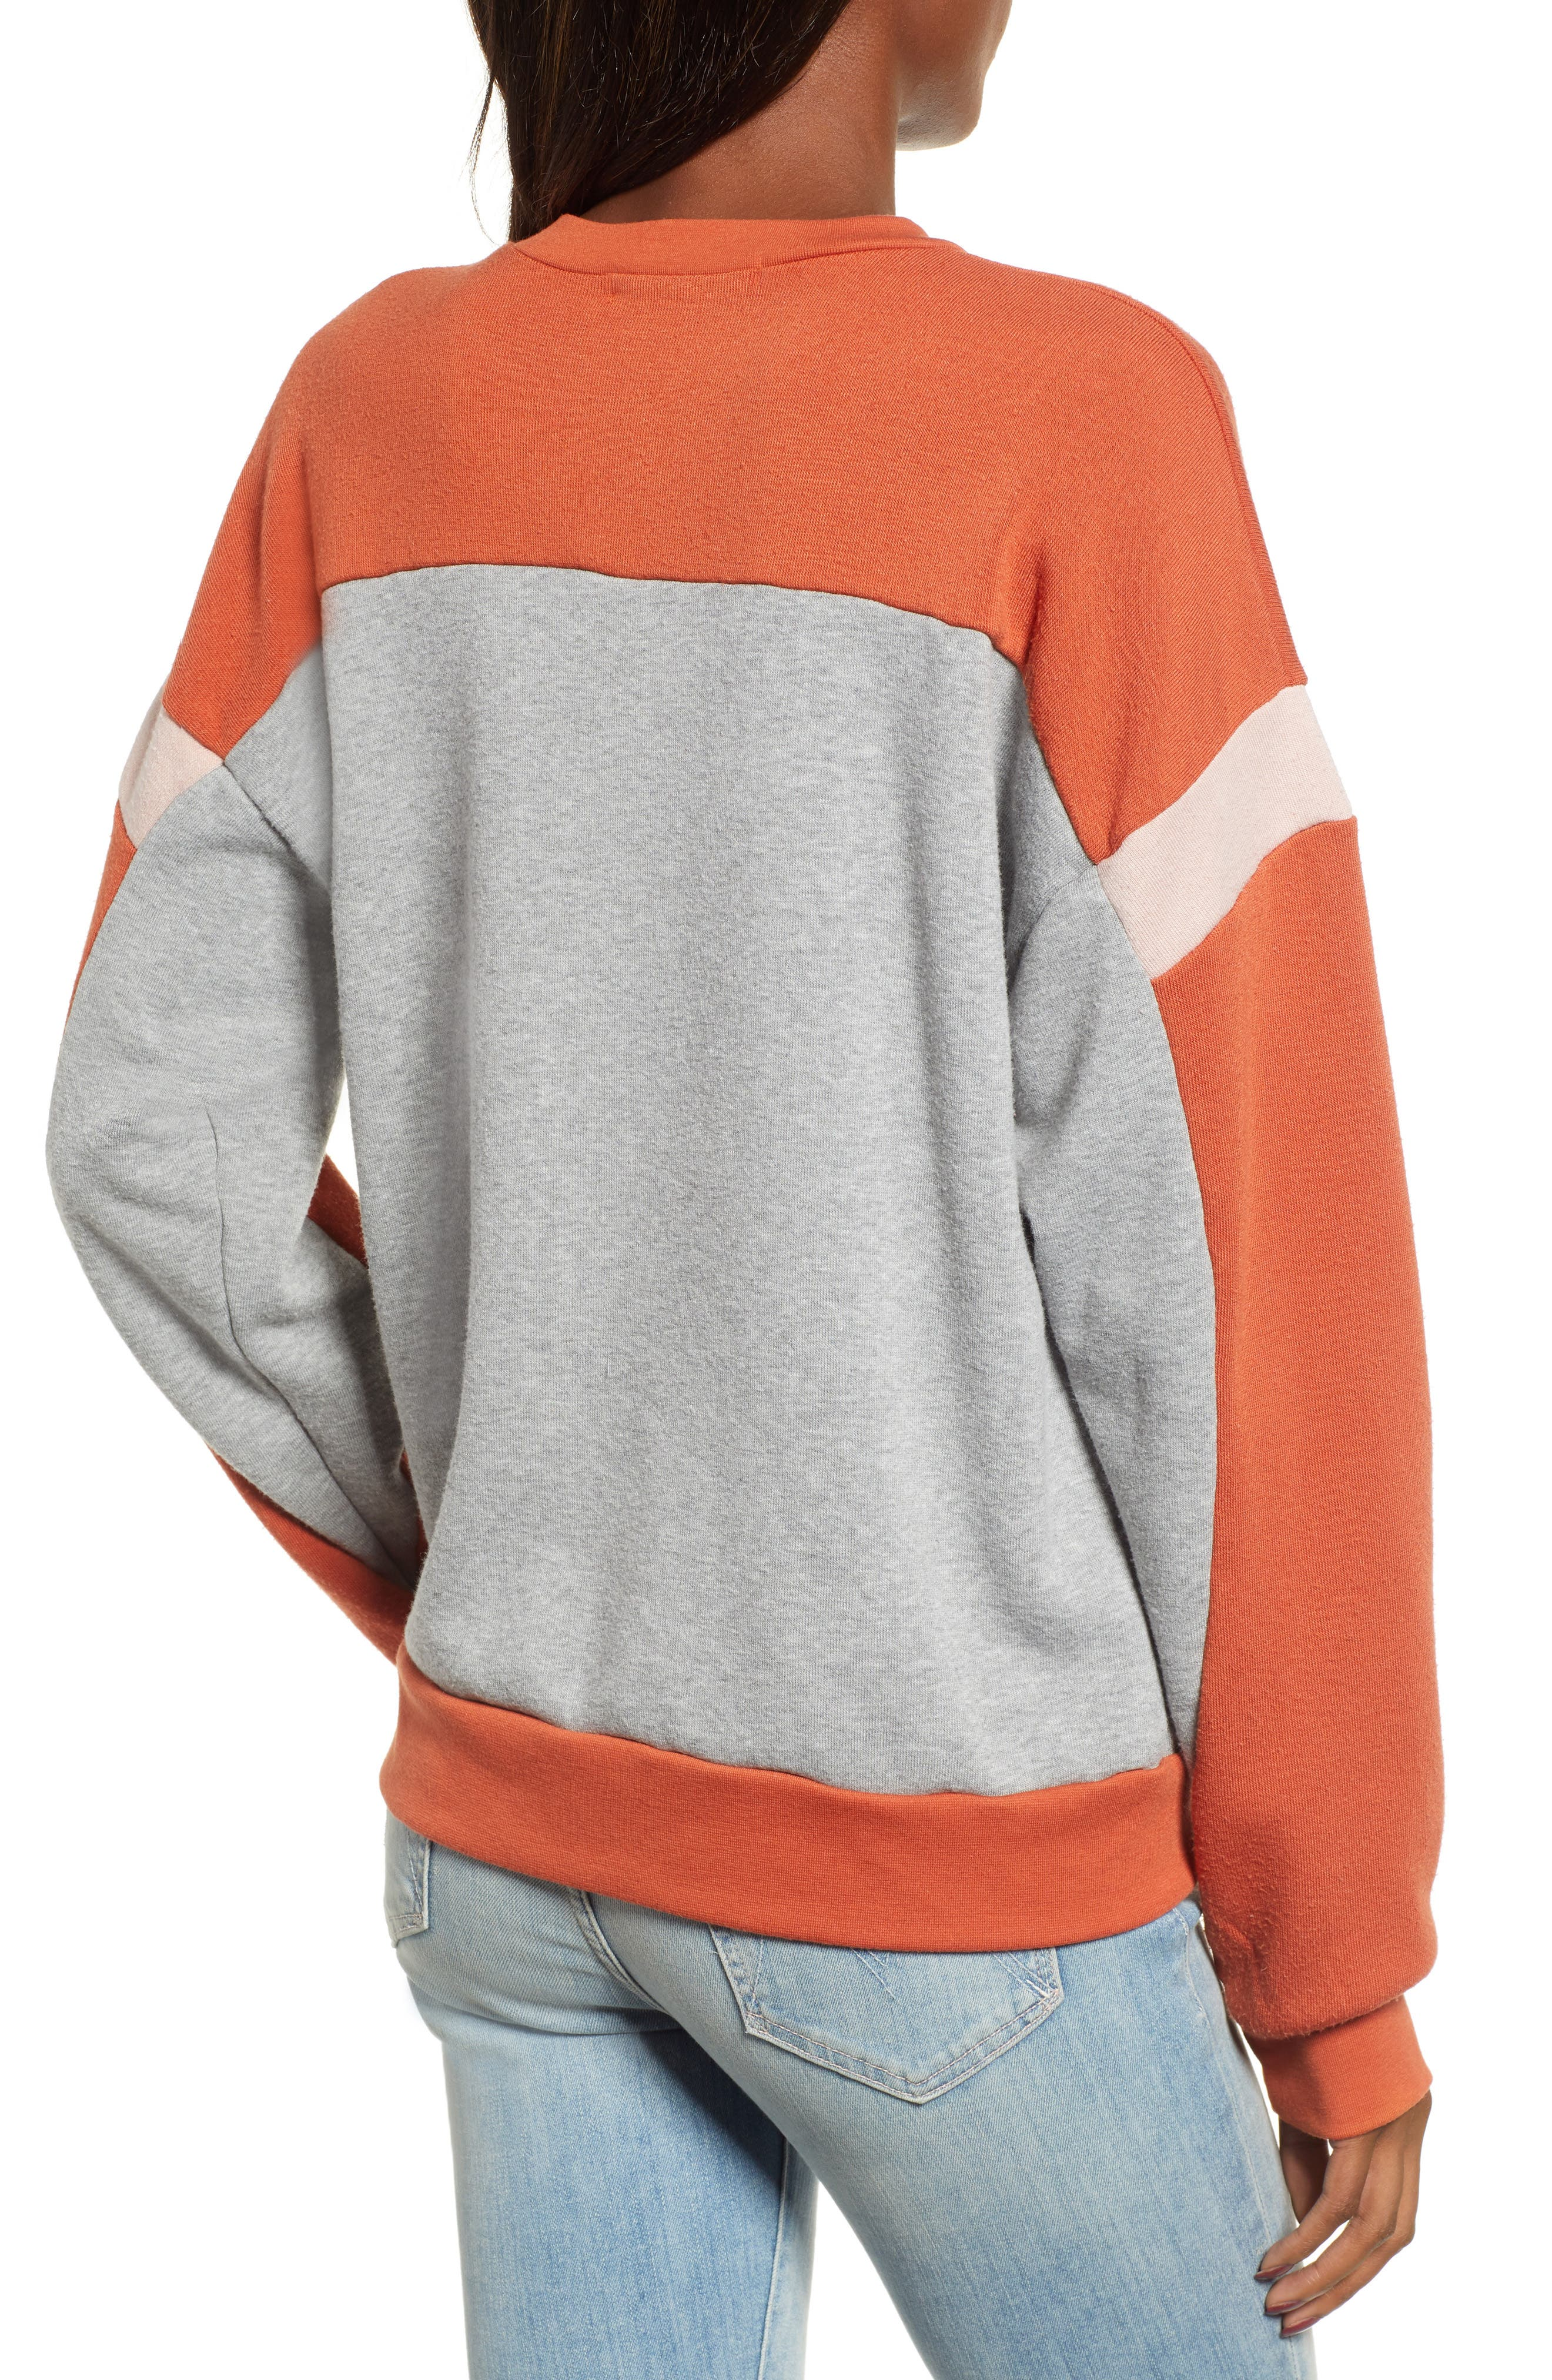 Rewind Colorblock Sweatshirt,                             Alternate thumbnail 2, color,                             HEATHER GREY/ SERRANO